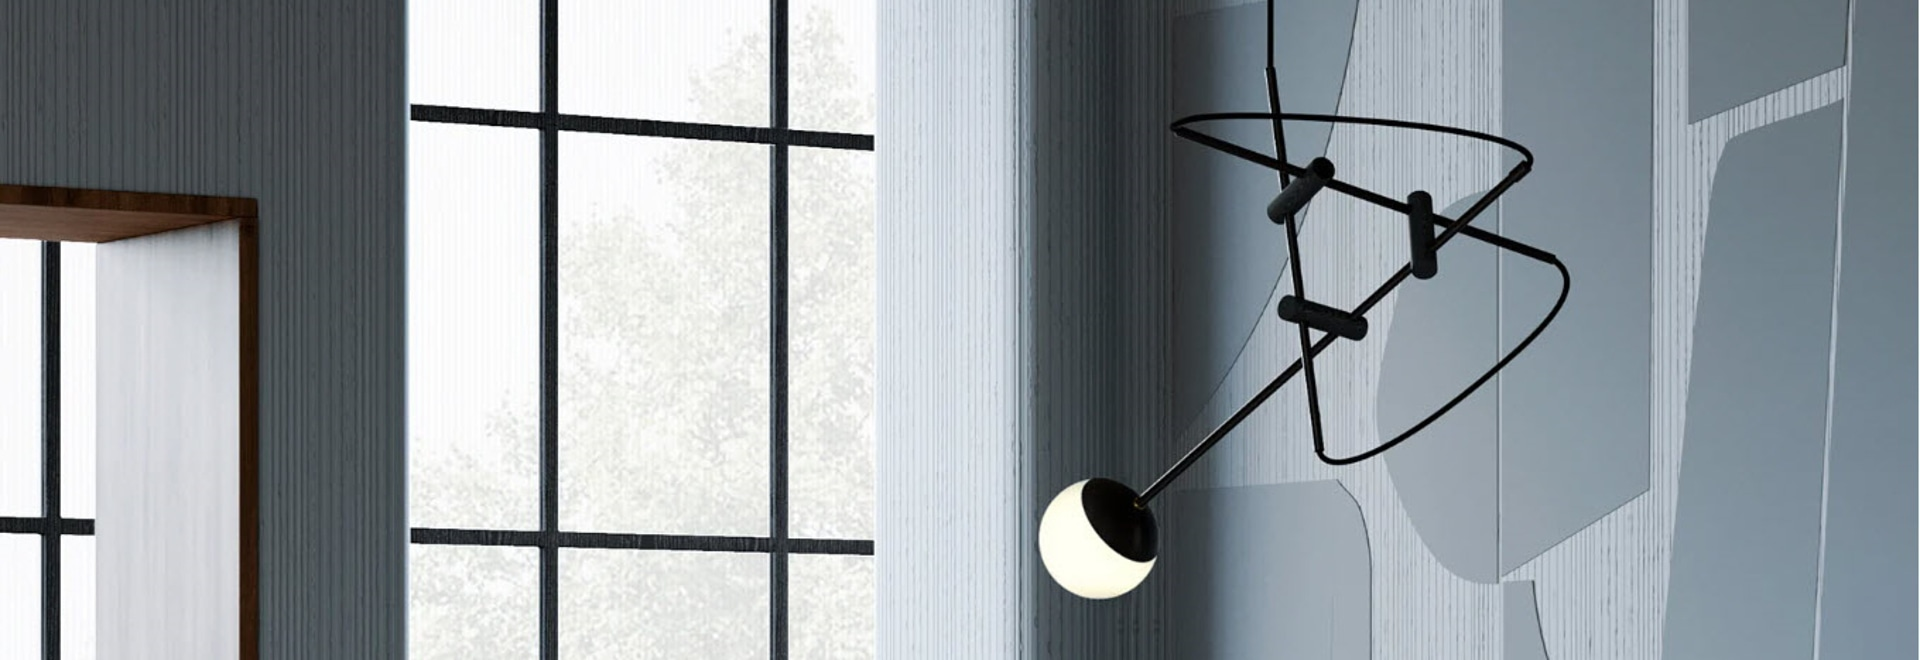 'Tanjun' lighting collection combines japanese culture + minimalist design